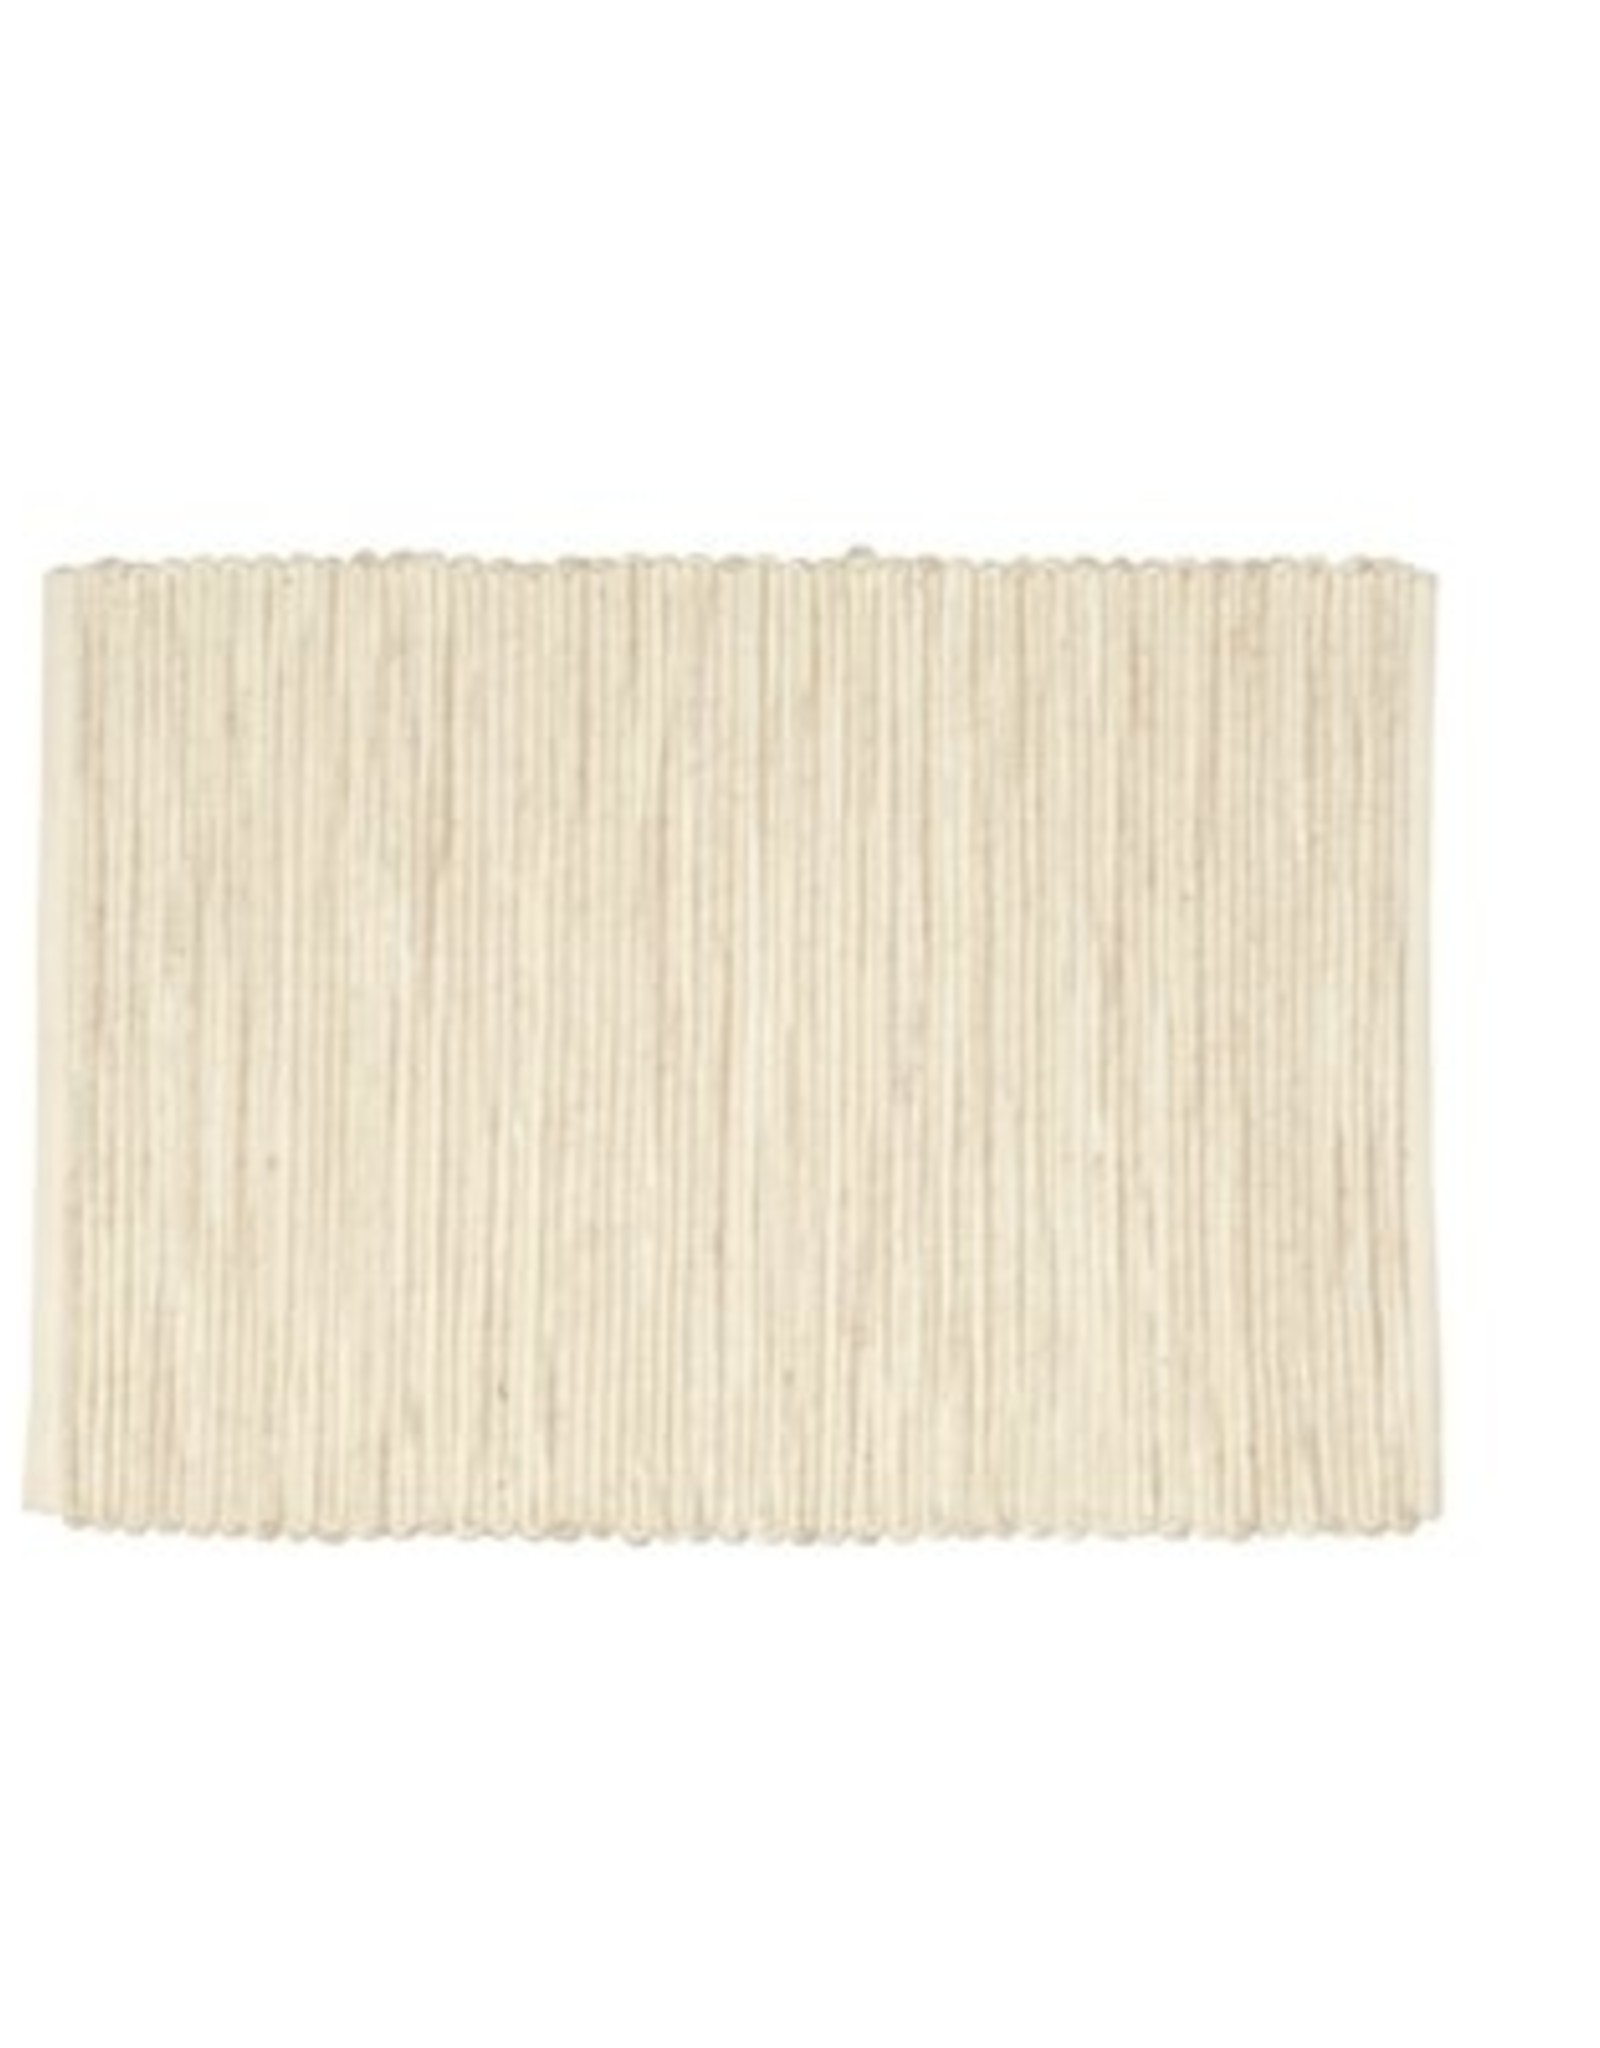 Placemat Harman Two Tone Natural